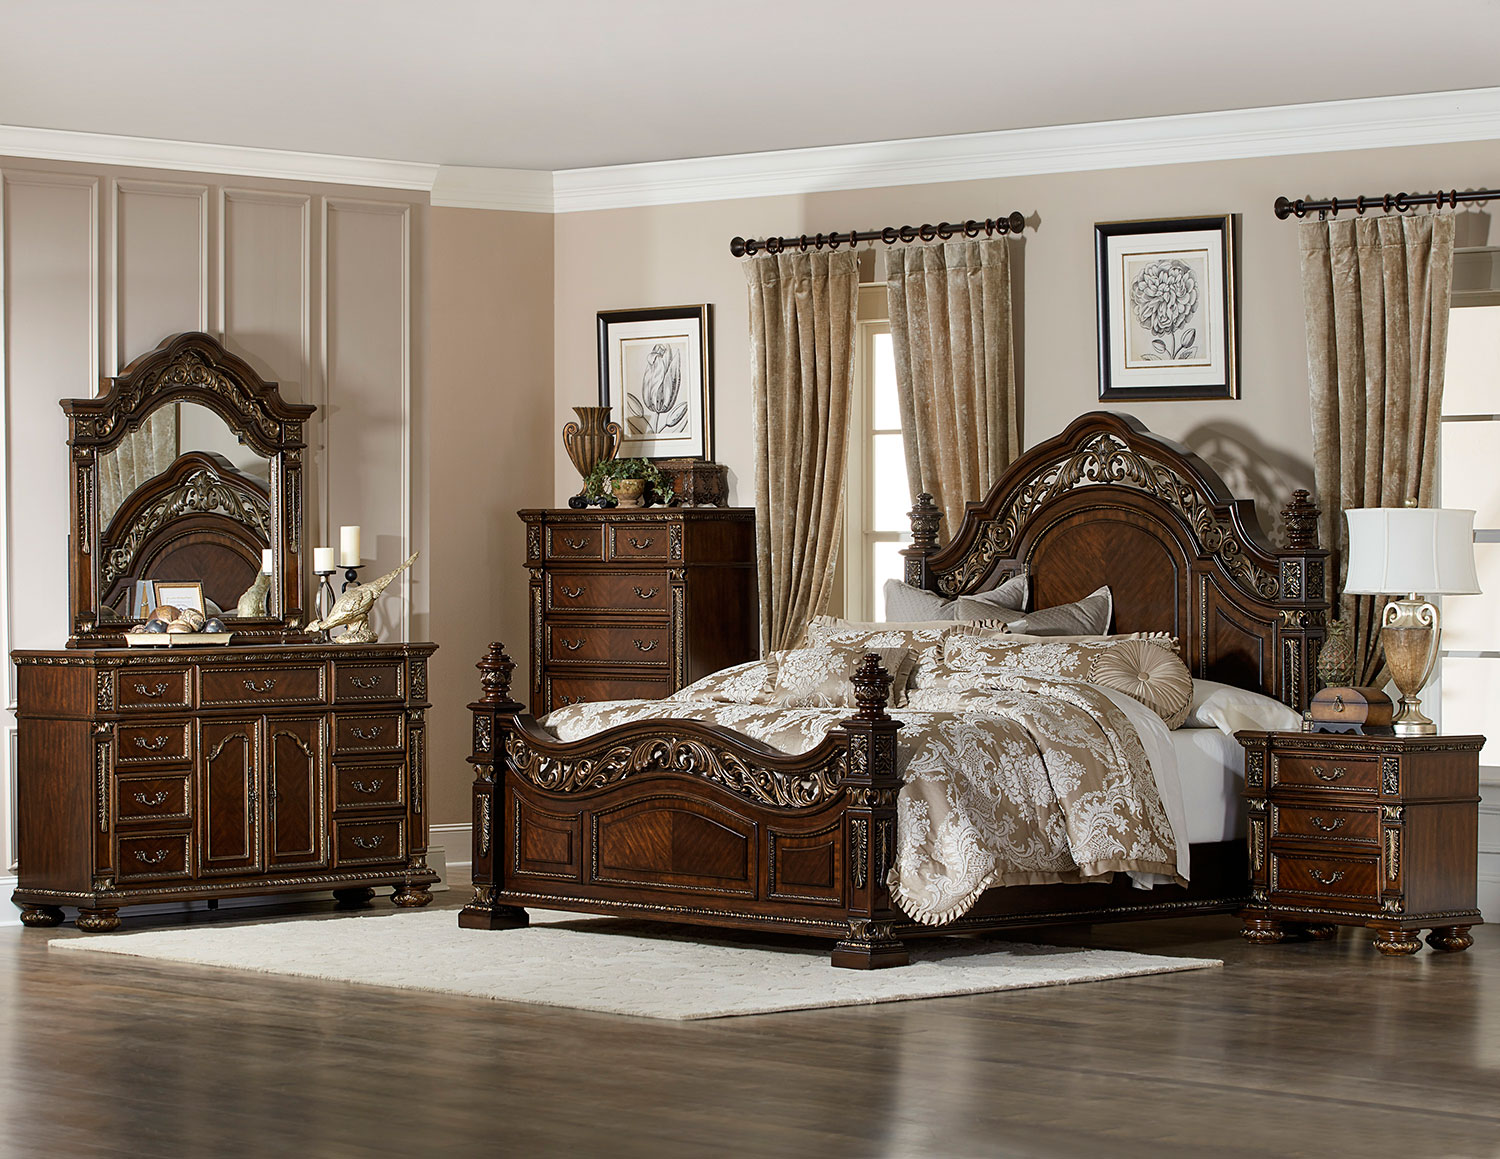 Homelegance Catalonia Bedroom Set - Cherry